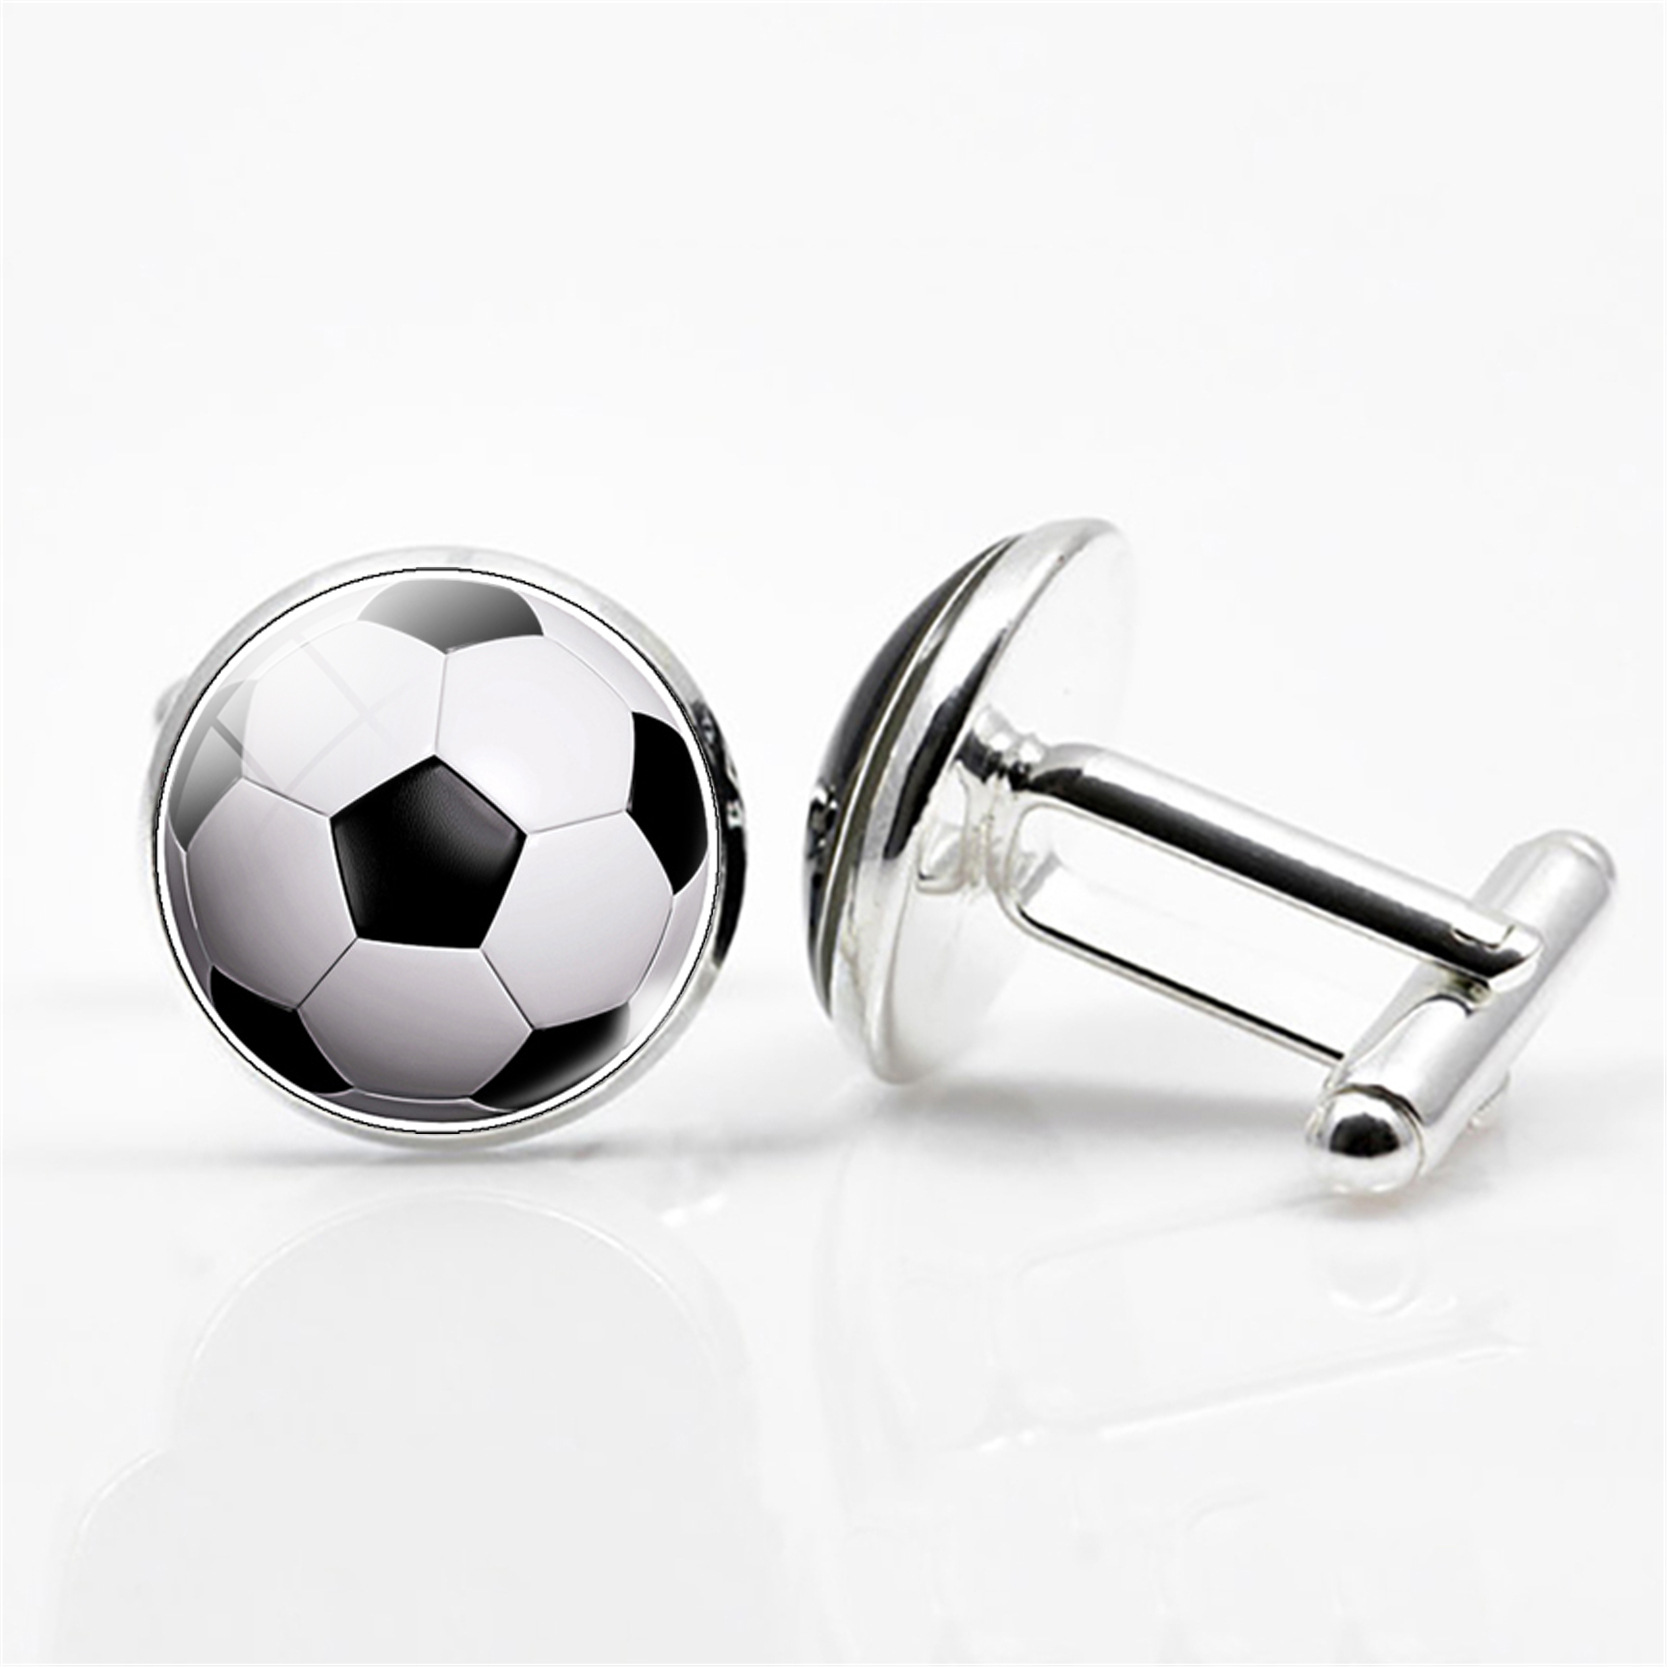 6 Style High Quality Silver Plated Jewelry with Football Pattern Novelty Cufflinks Stud for Men Wedding Gift